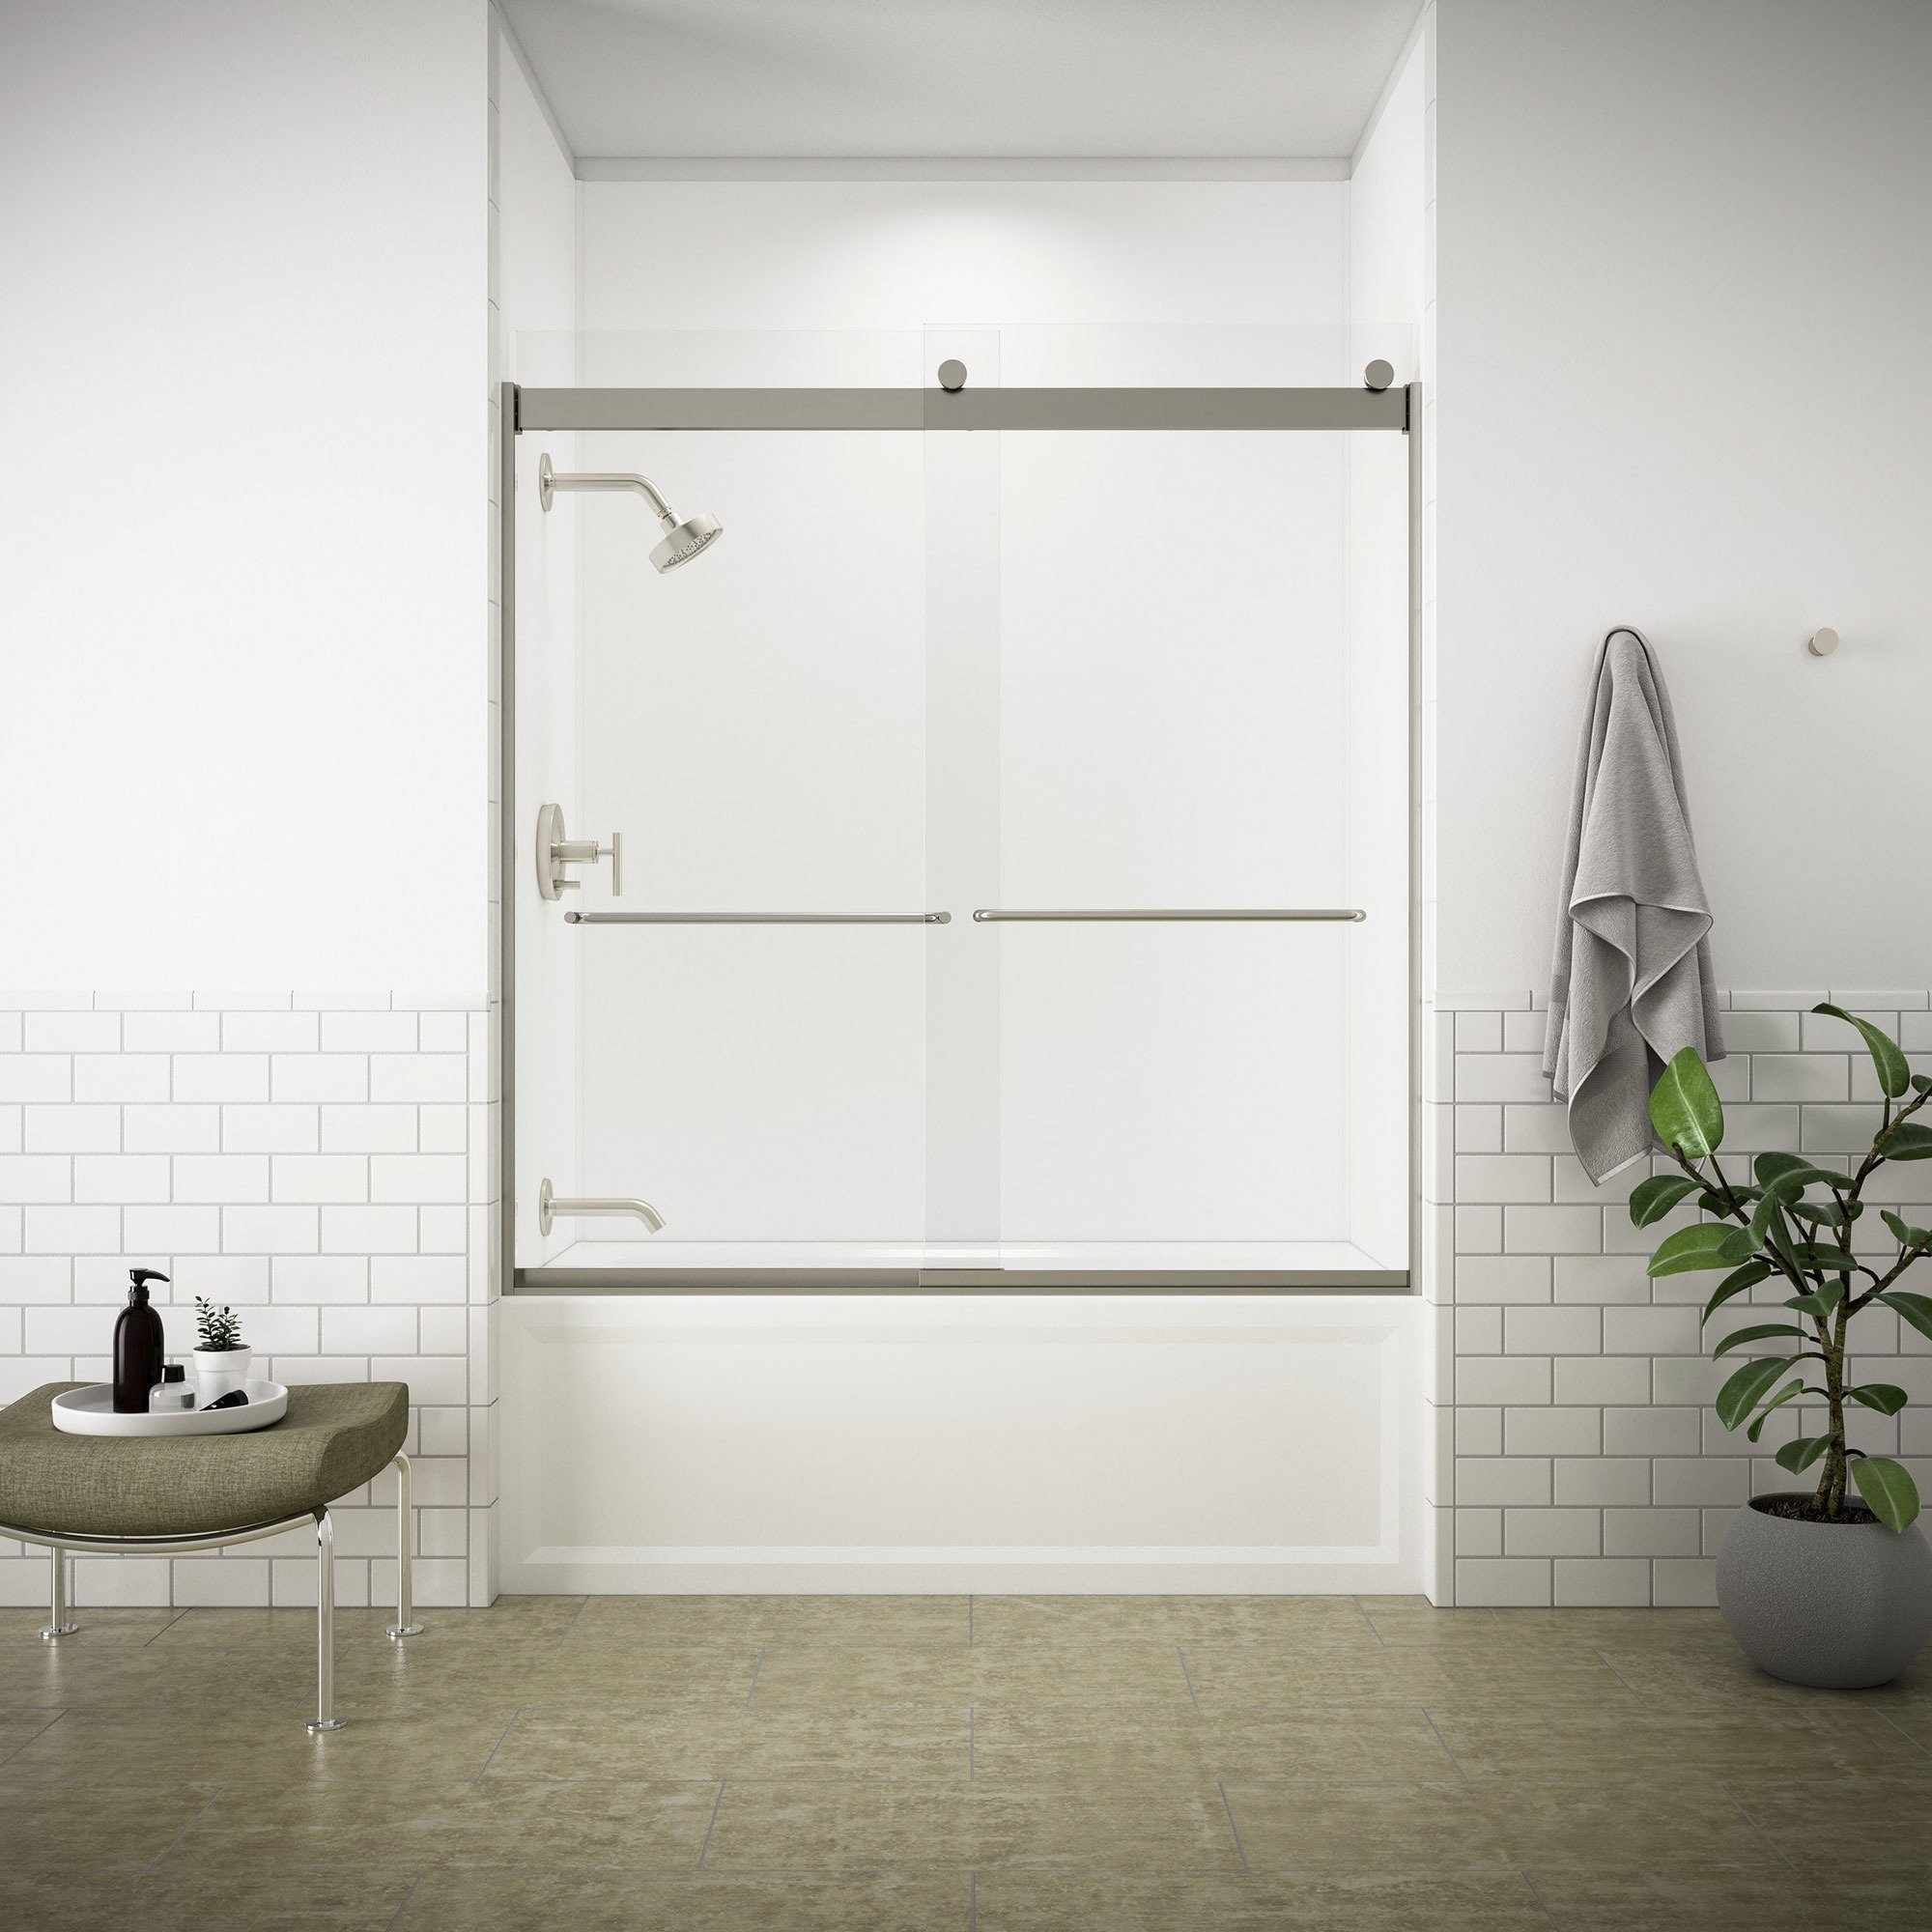 KOHLER K-706004-L-MX Levity  Bypass Bath Door with Towel Bar and 1/4-Inch  Crystal Clear Glass in Matte Nickel